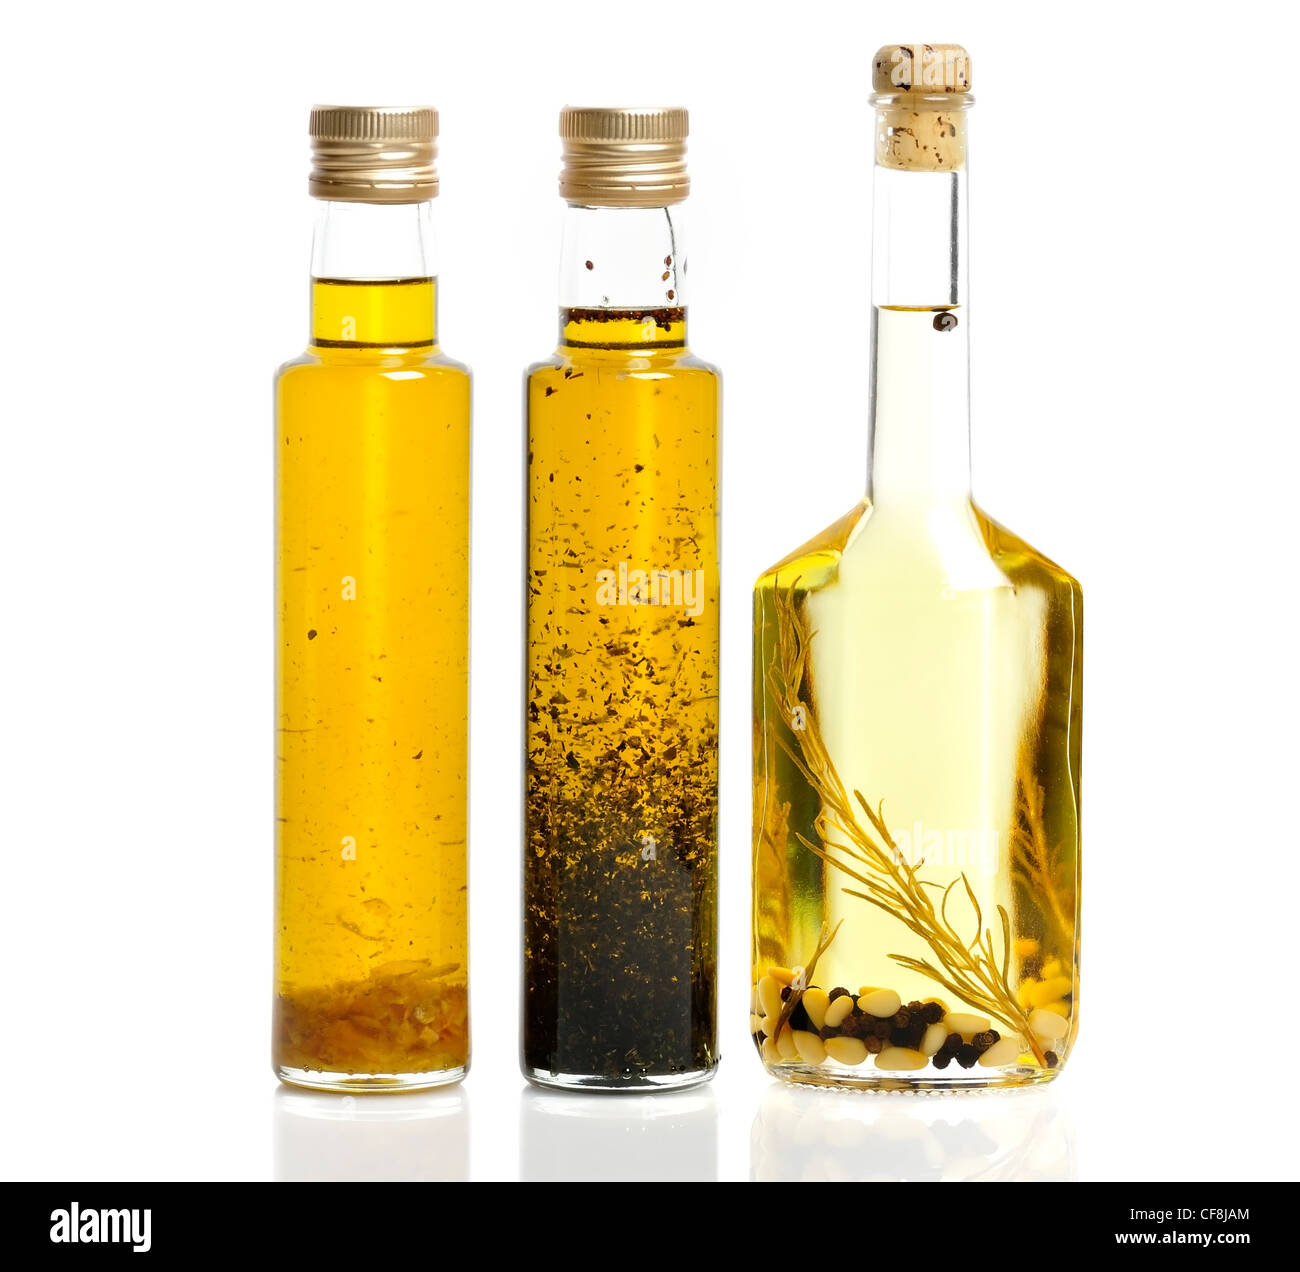 Cooking Oil Bottles On White Background - Stock Image